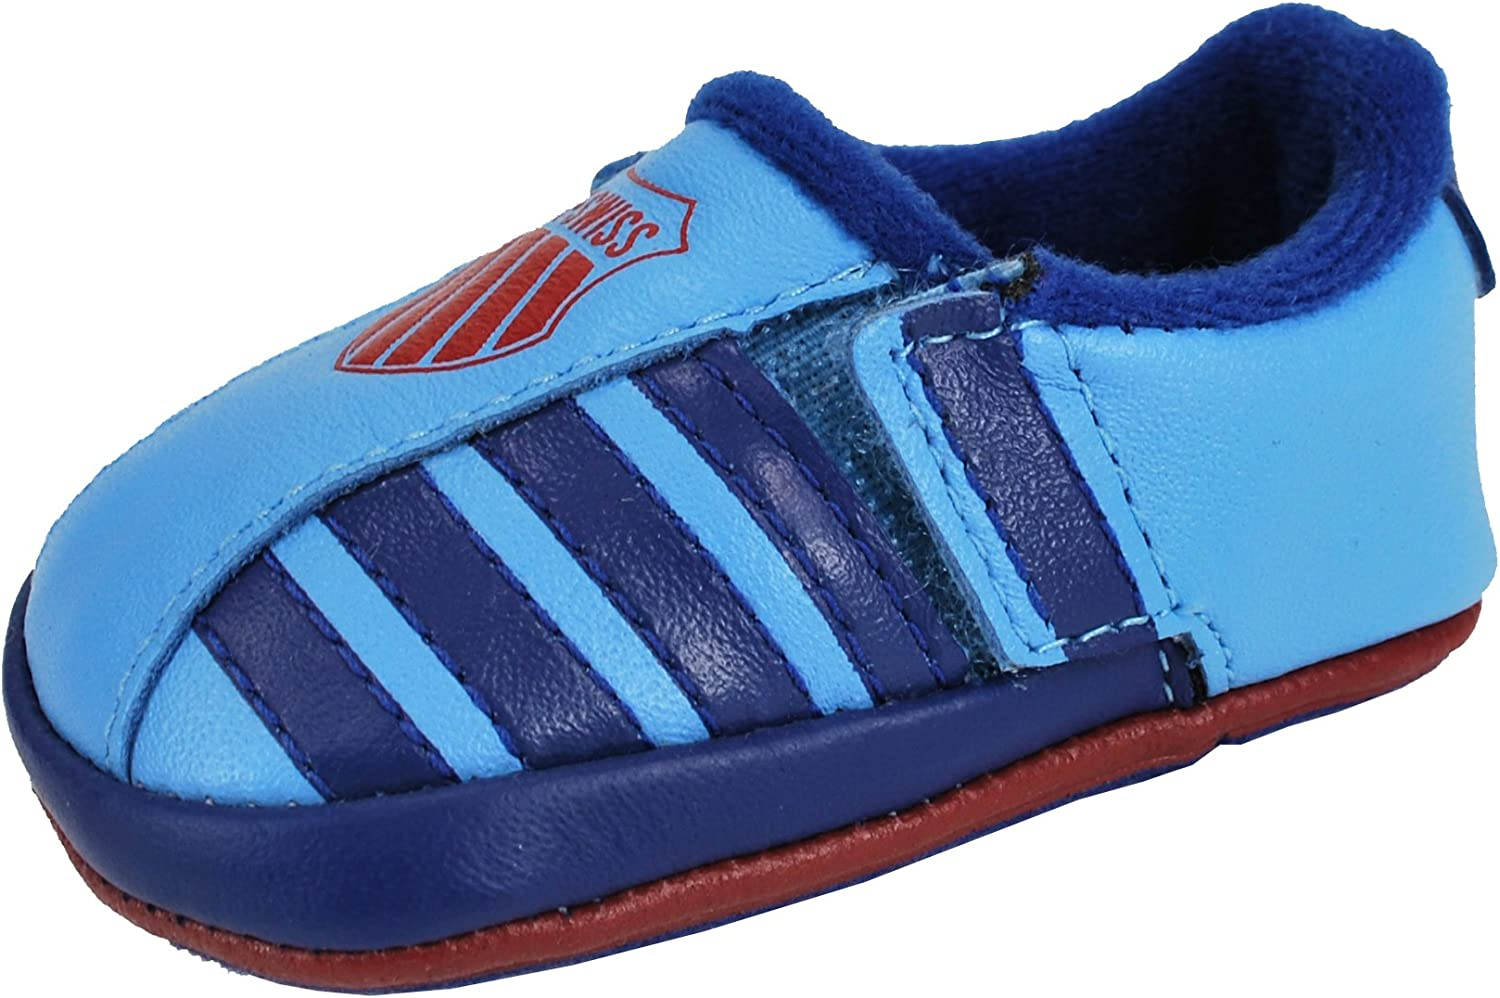 K-Swiss New Max 45% OFF Born Crib Max 88% OFF Shoes Navy Blue Ellzey Sneaker Red